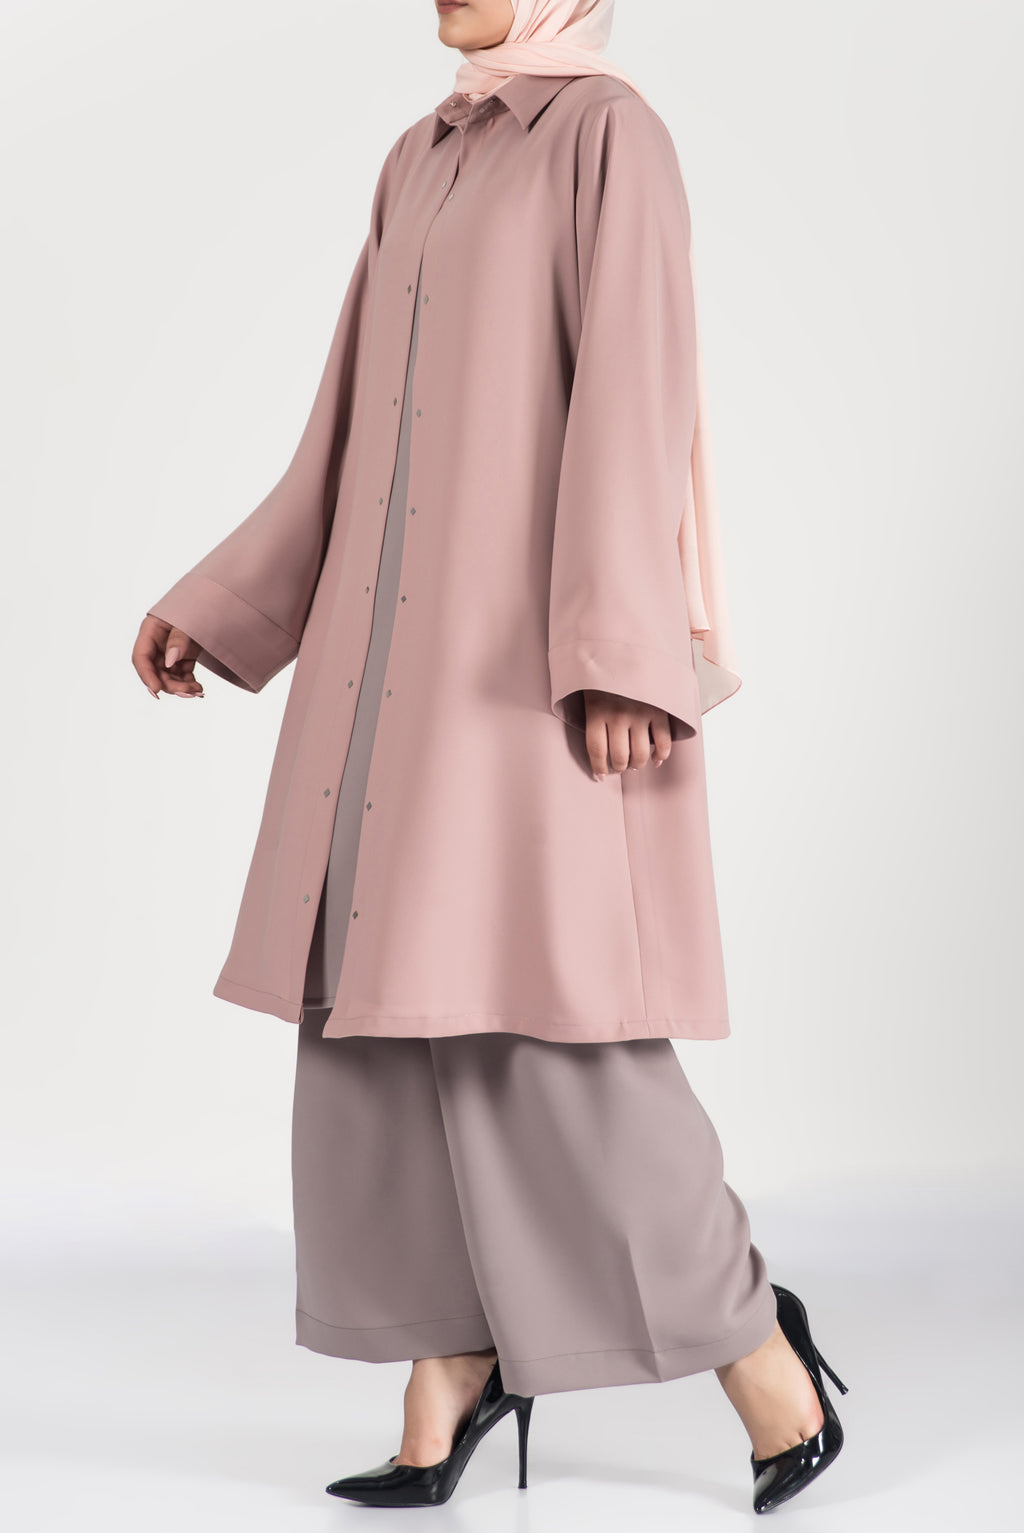 Pink Travel Wear | thowby ثــوبــي | Fashionable Islamic clothing | online boutique